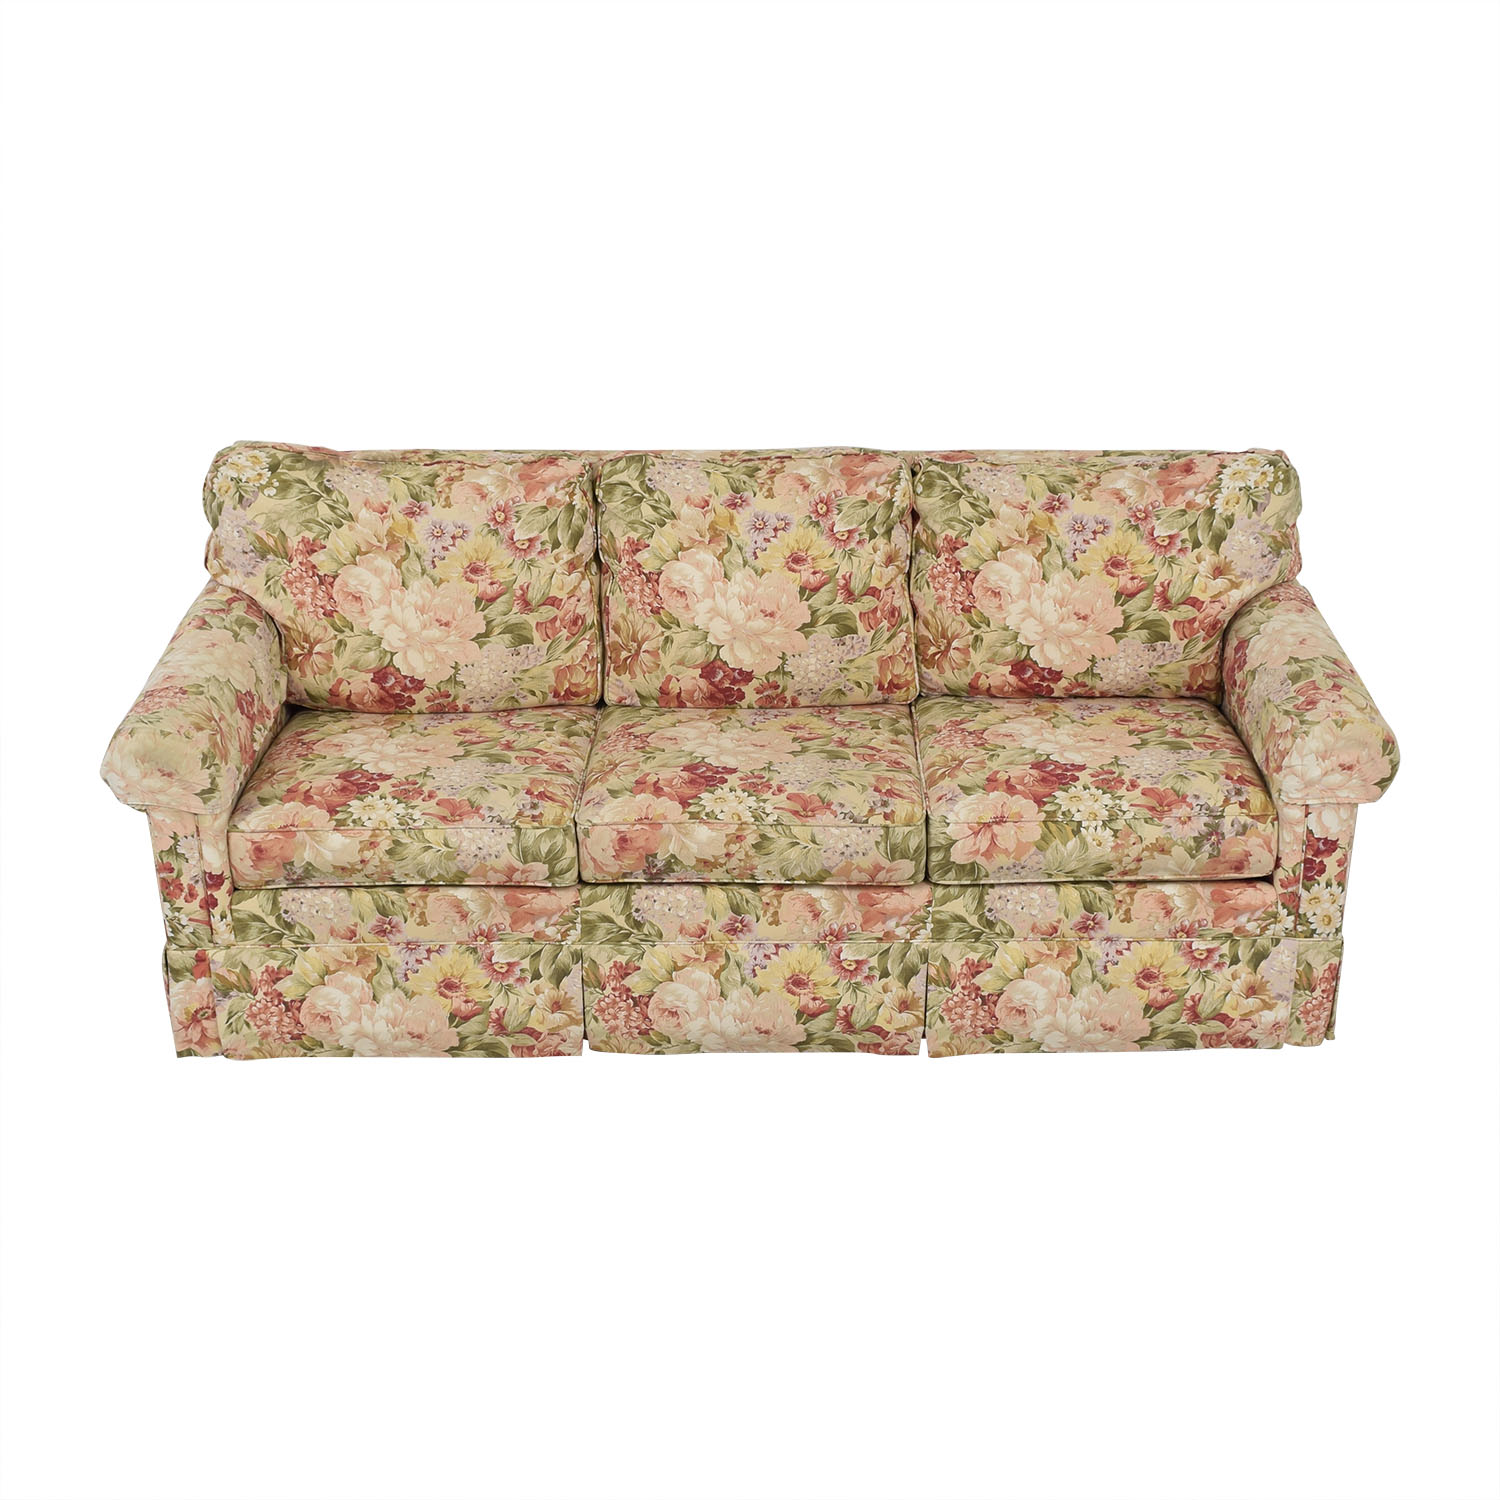 Ethan Allen Ethan Allen Floral Slipcovered Sofa dimensions